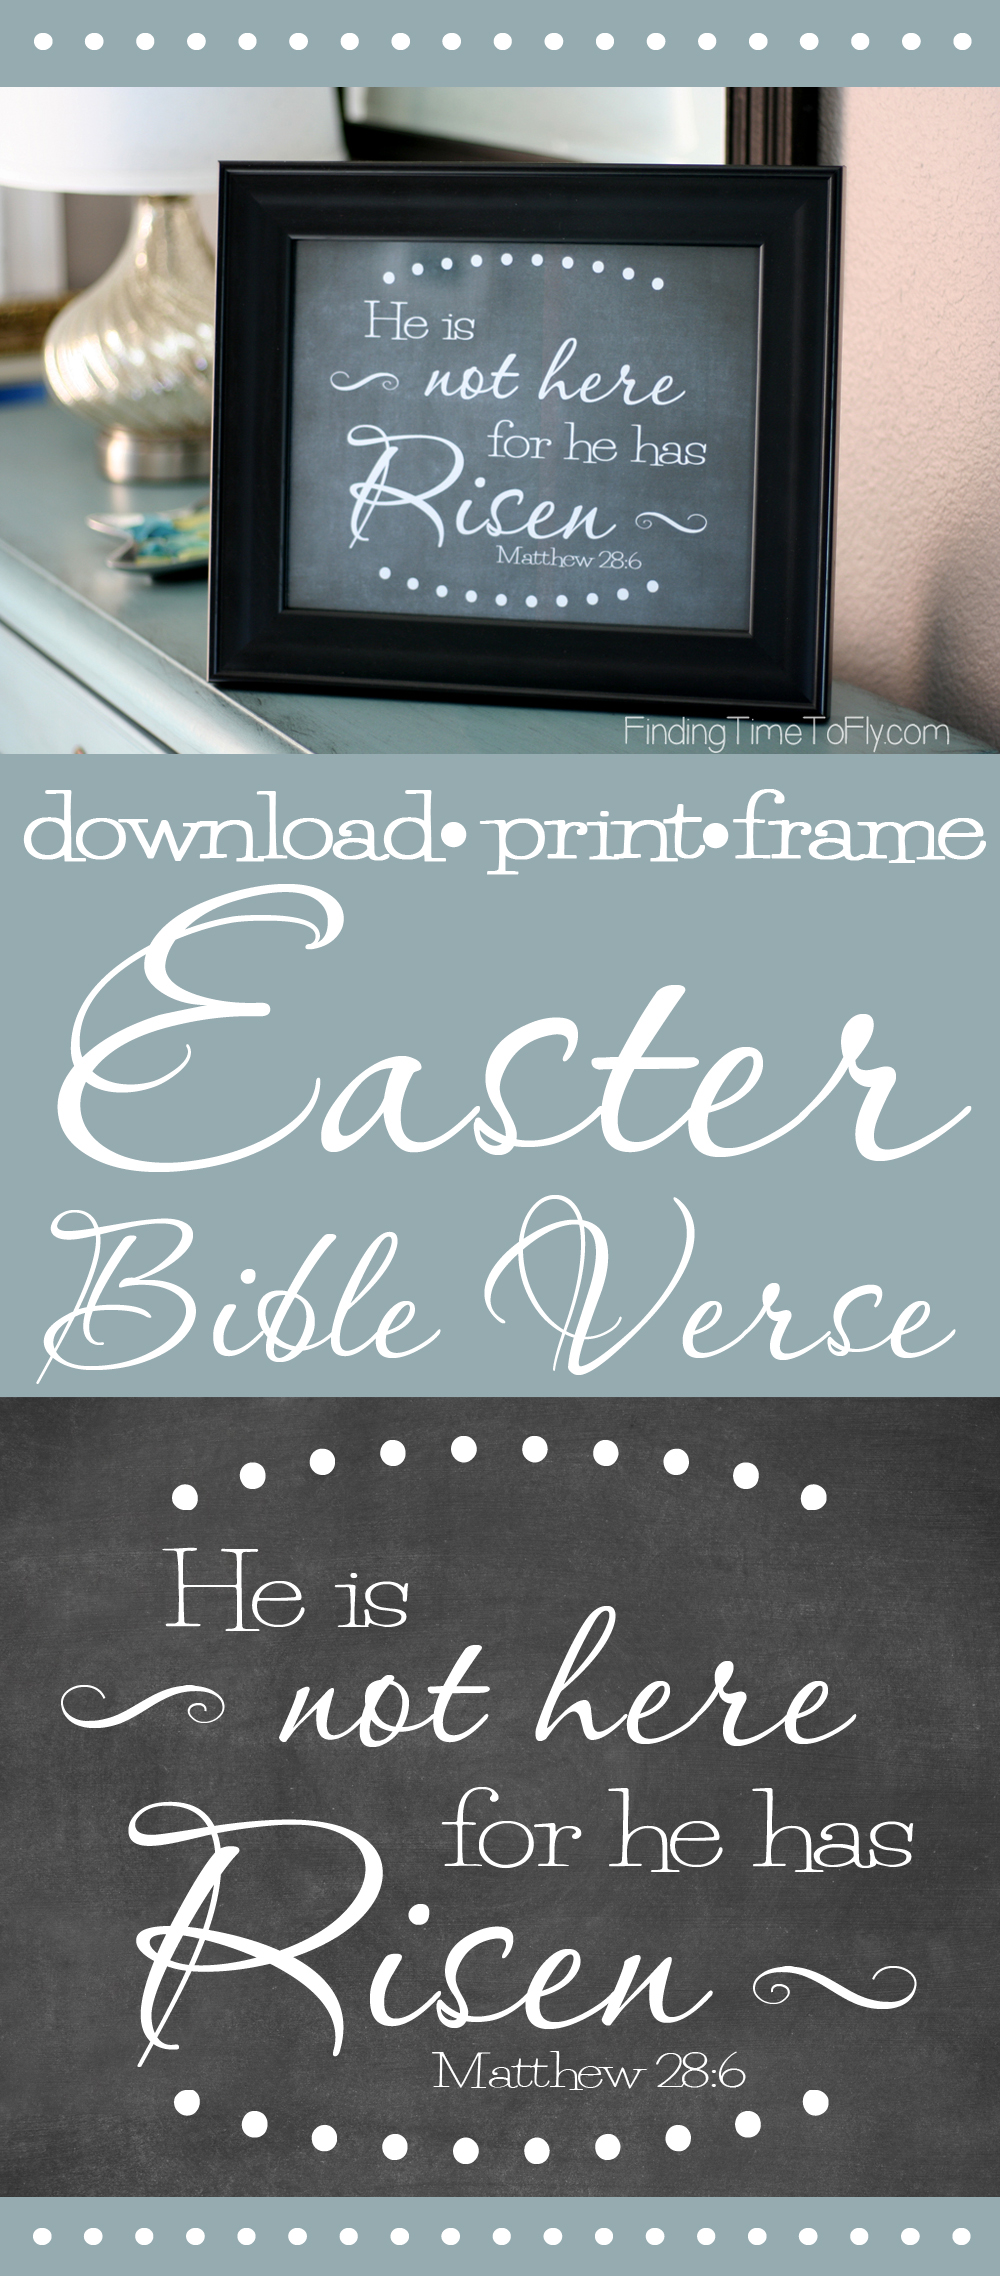 Love this printable Bible verse for Easter! He is not here for he has risen. Matthew 28:6